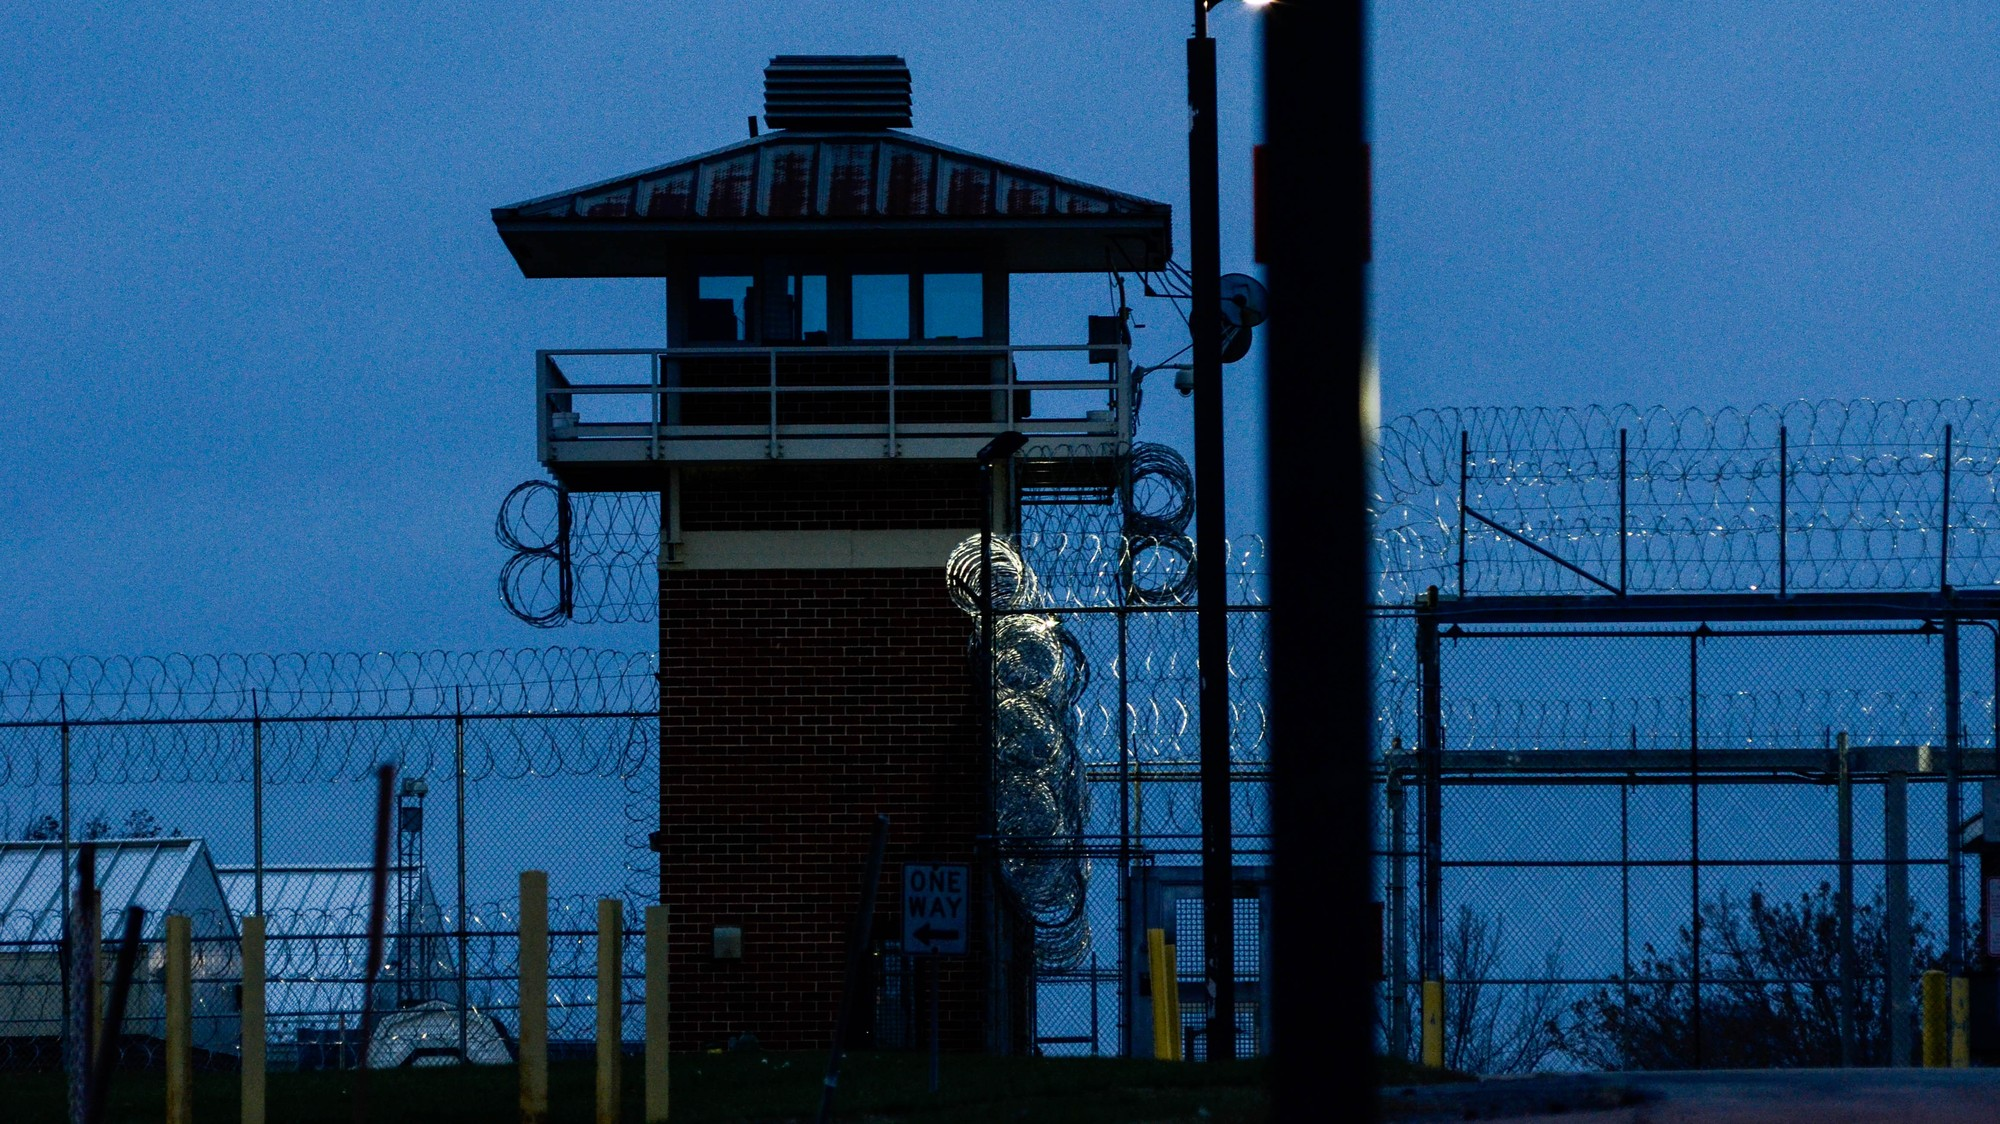 Cameras Actually Tamed Attica, the Brutal Prison I Used to